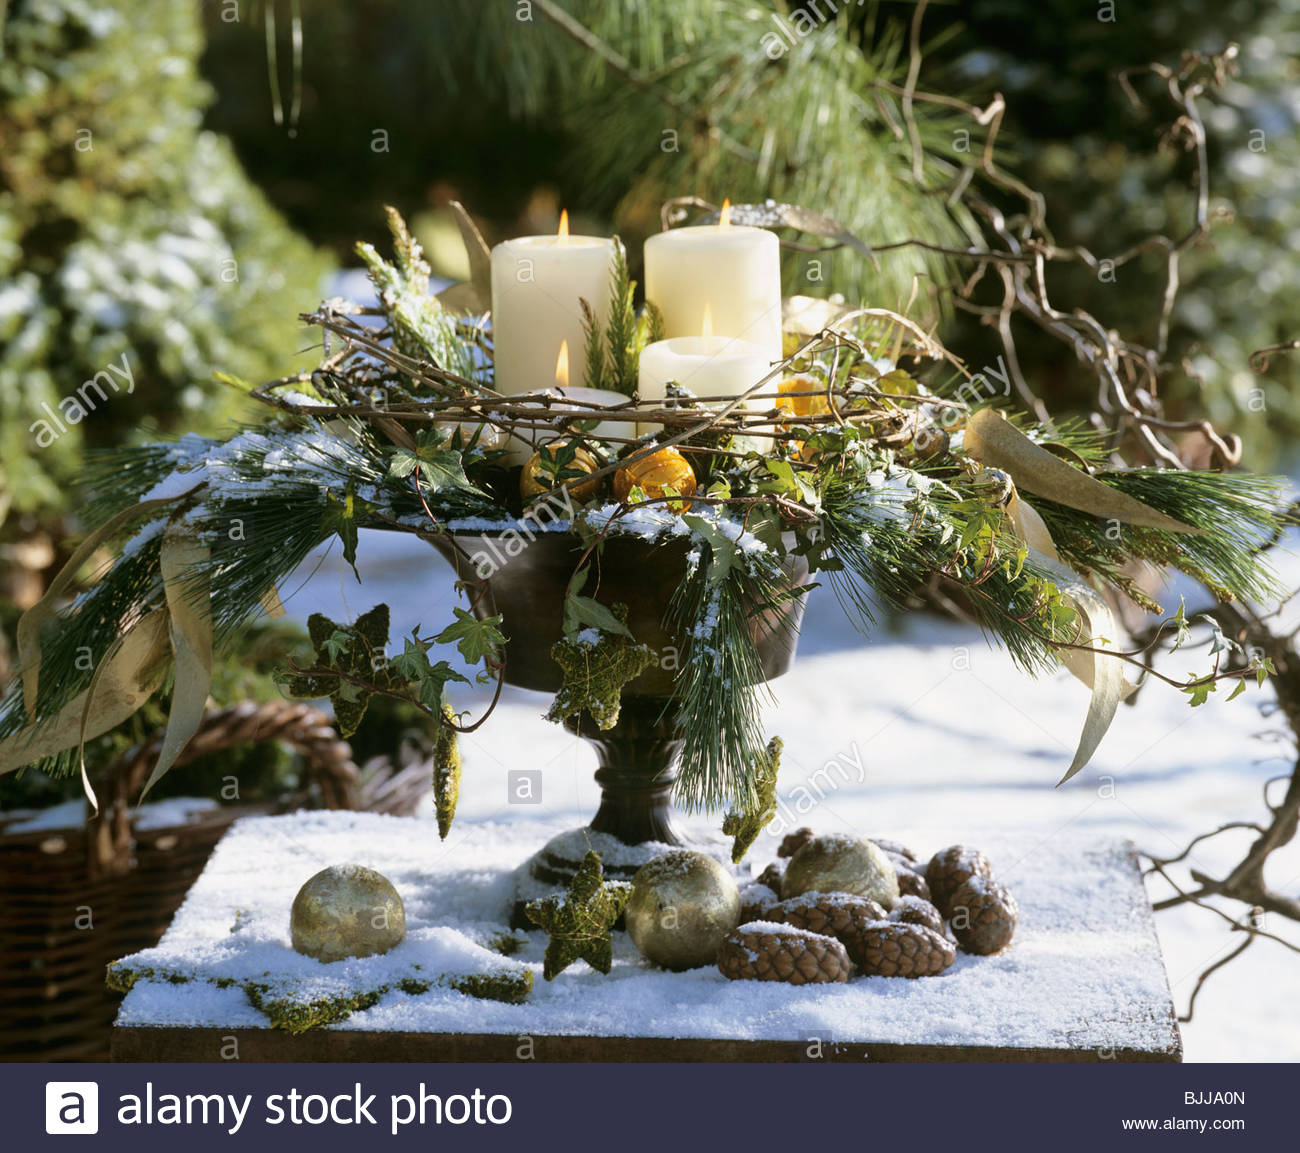 flower arrangement for advent stockfotos flower arrangement for advent bilder seite 2 alamy. Black Bedroom Furniture Sets. Home Design Ideas